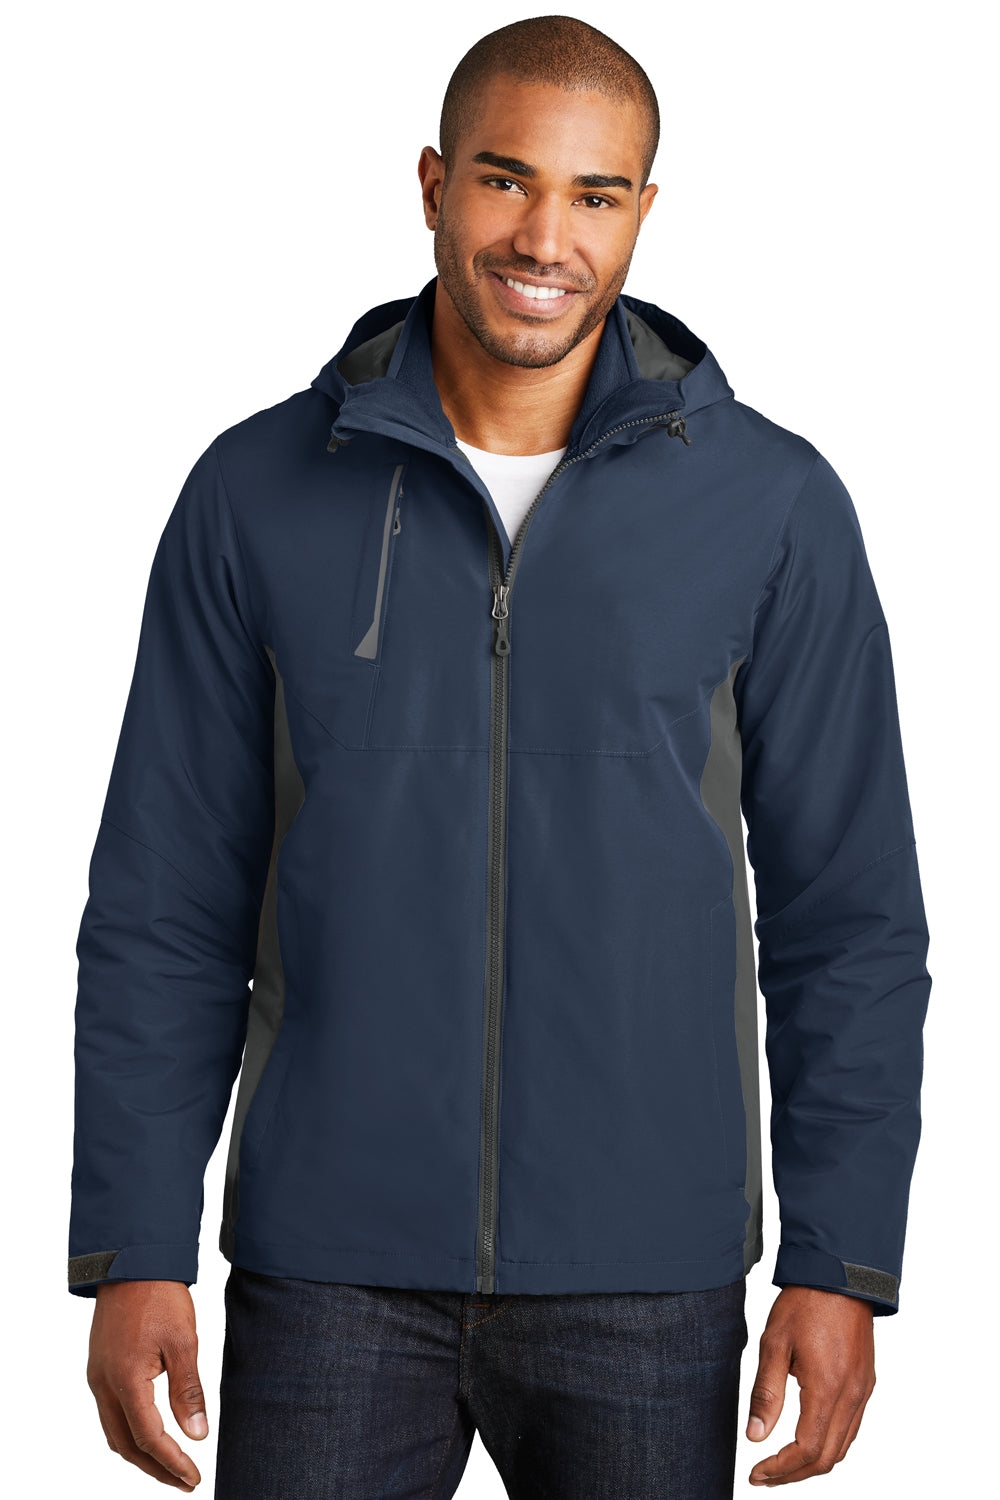 Port Authority J338 Mens Merge 3-in-1 Wind & Water Full Zip Hooded Jacket Navy Blue/Grey Front